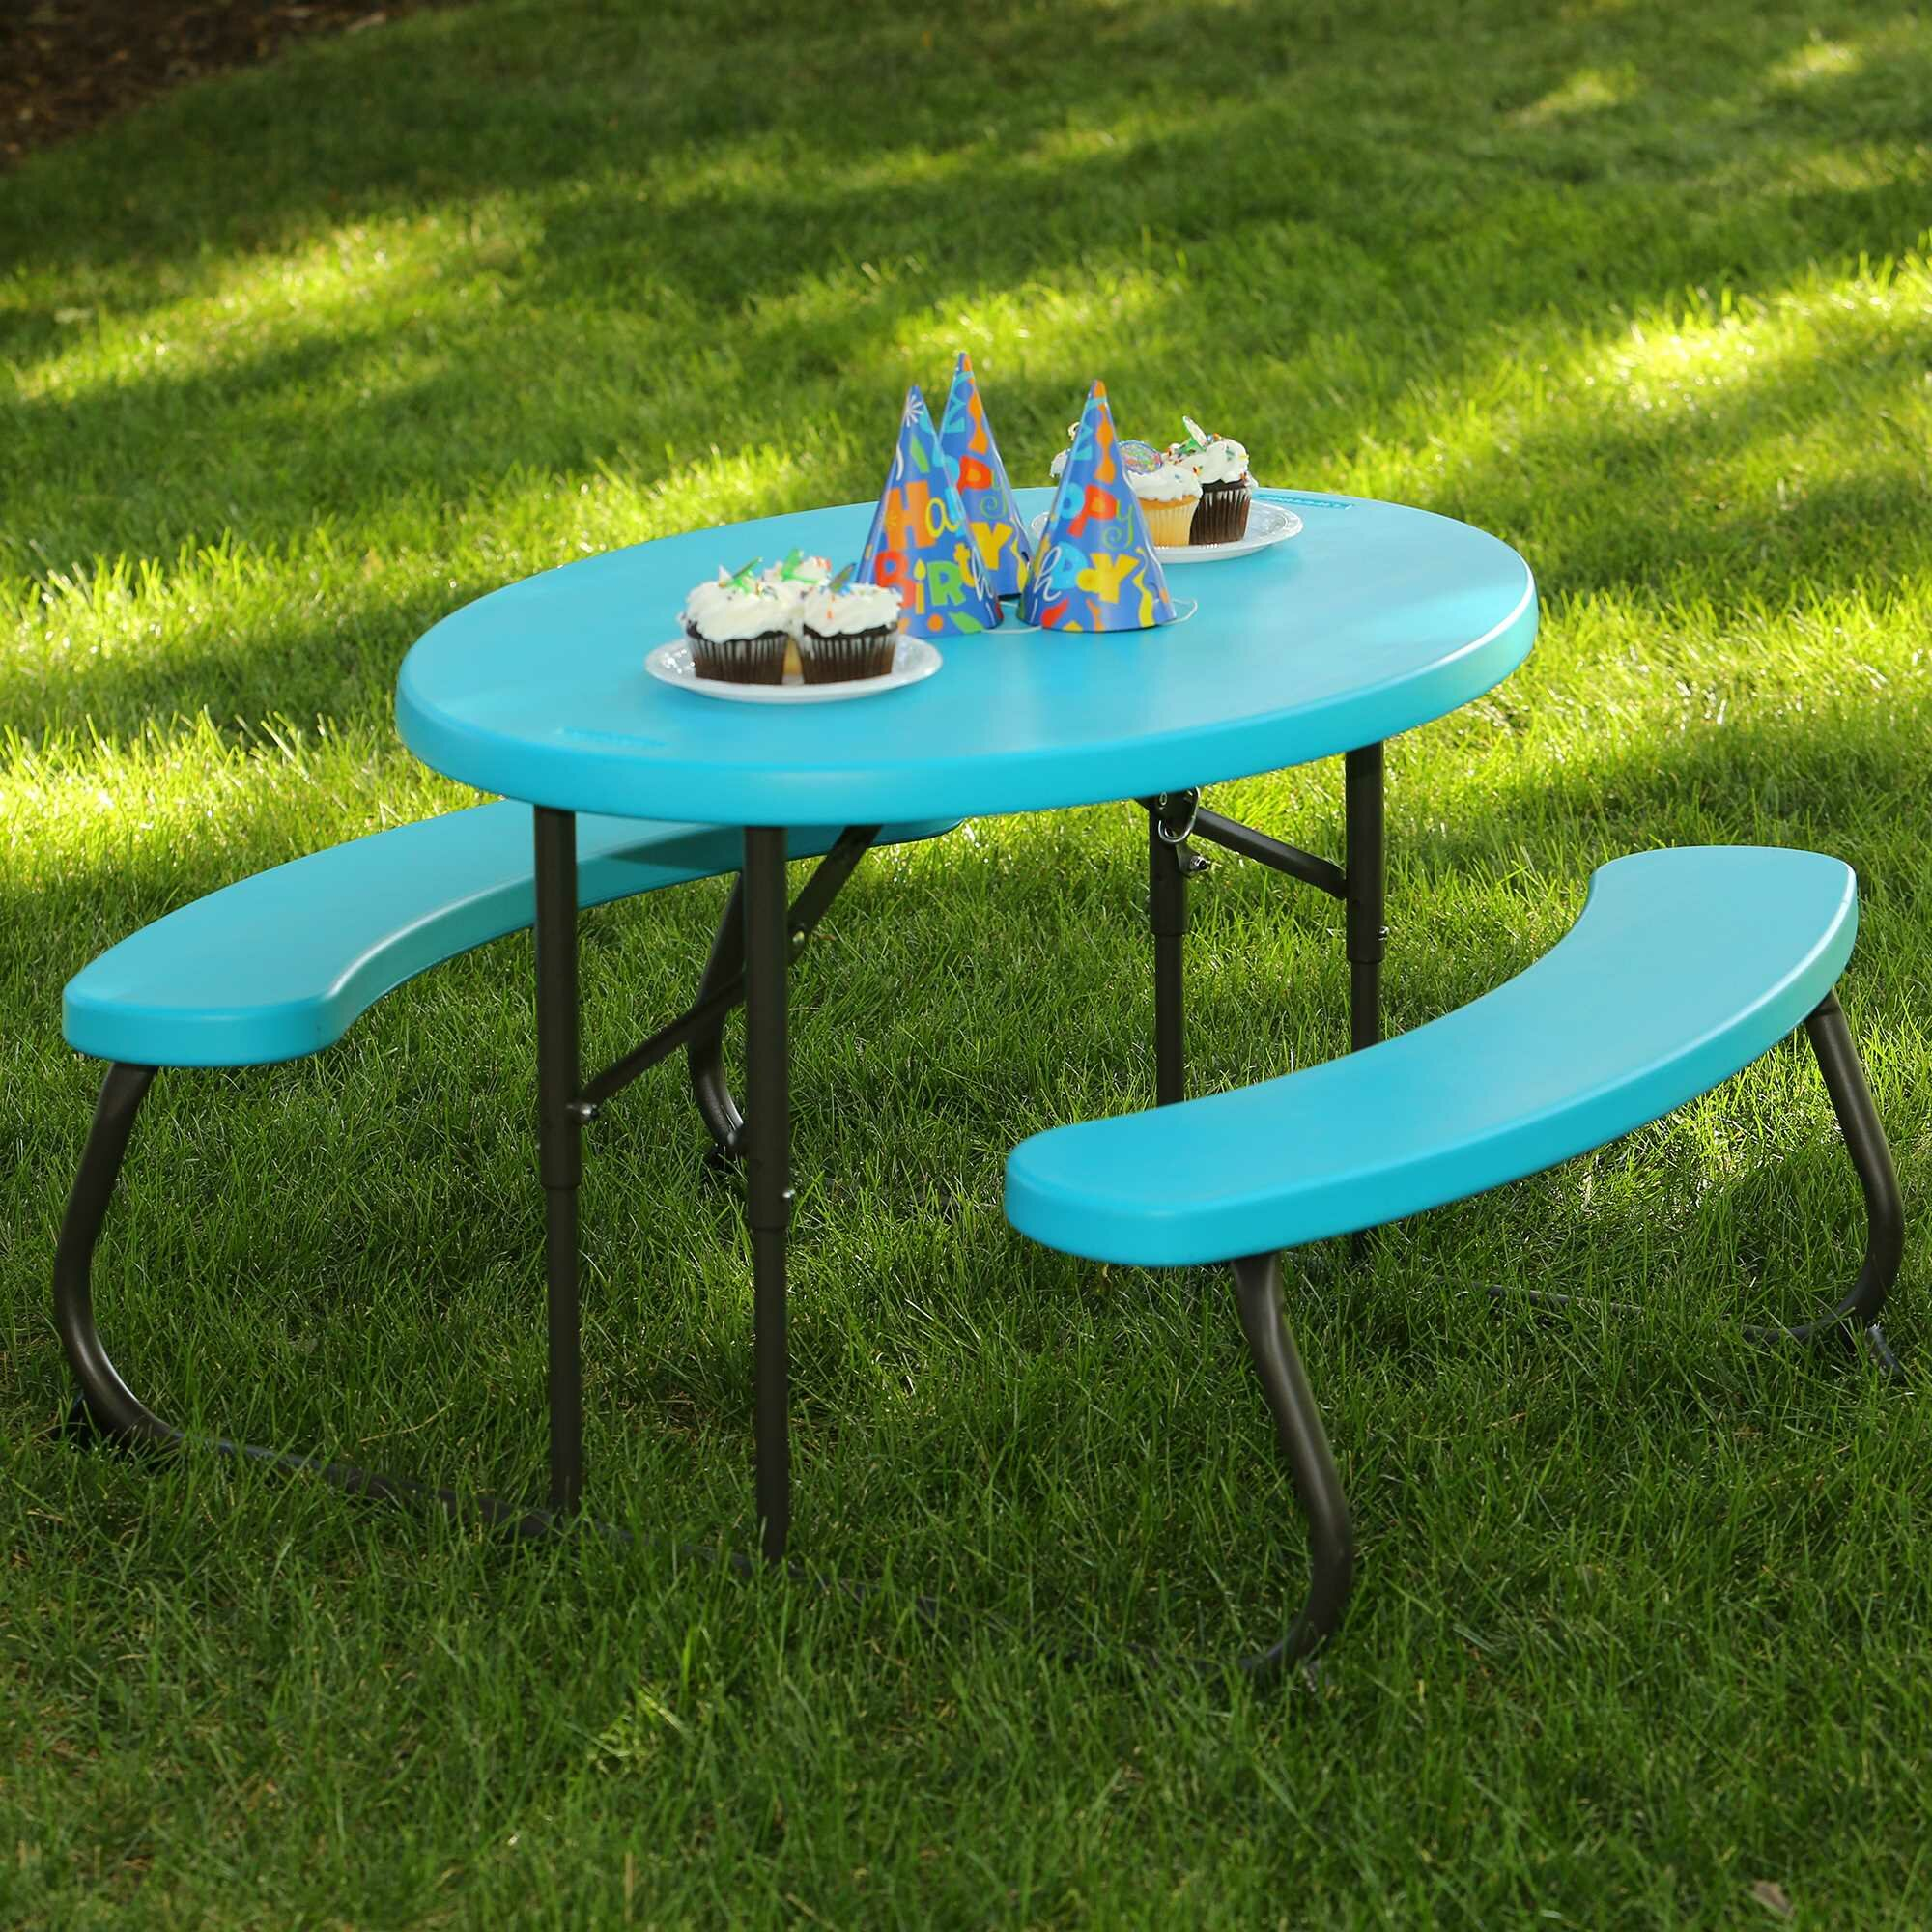 Lifetime 3 Piece Oval Picnic Table and Bench Set & Reviews | Wayfair